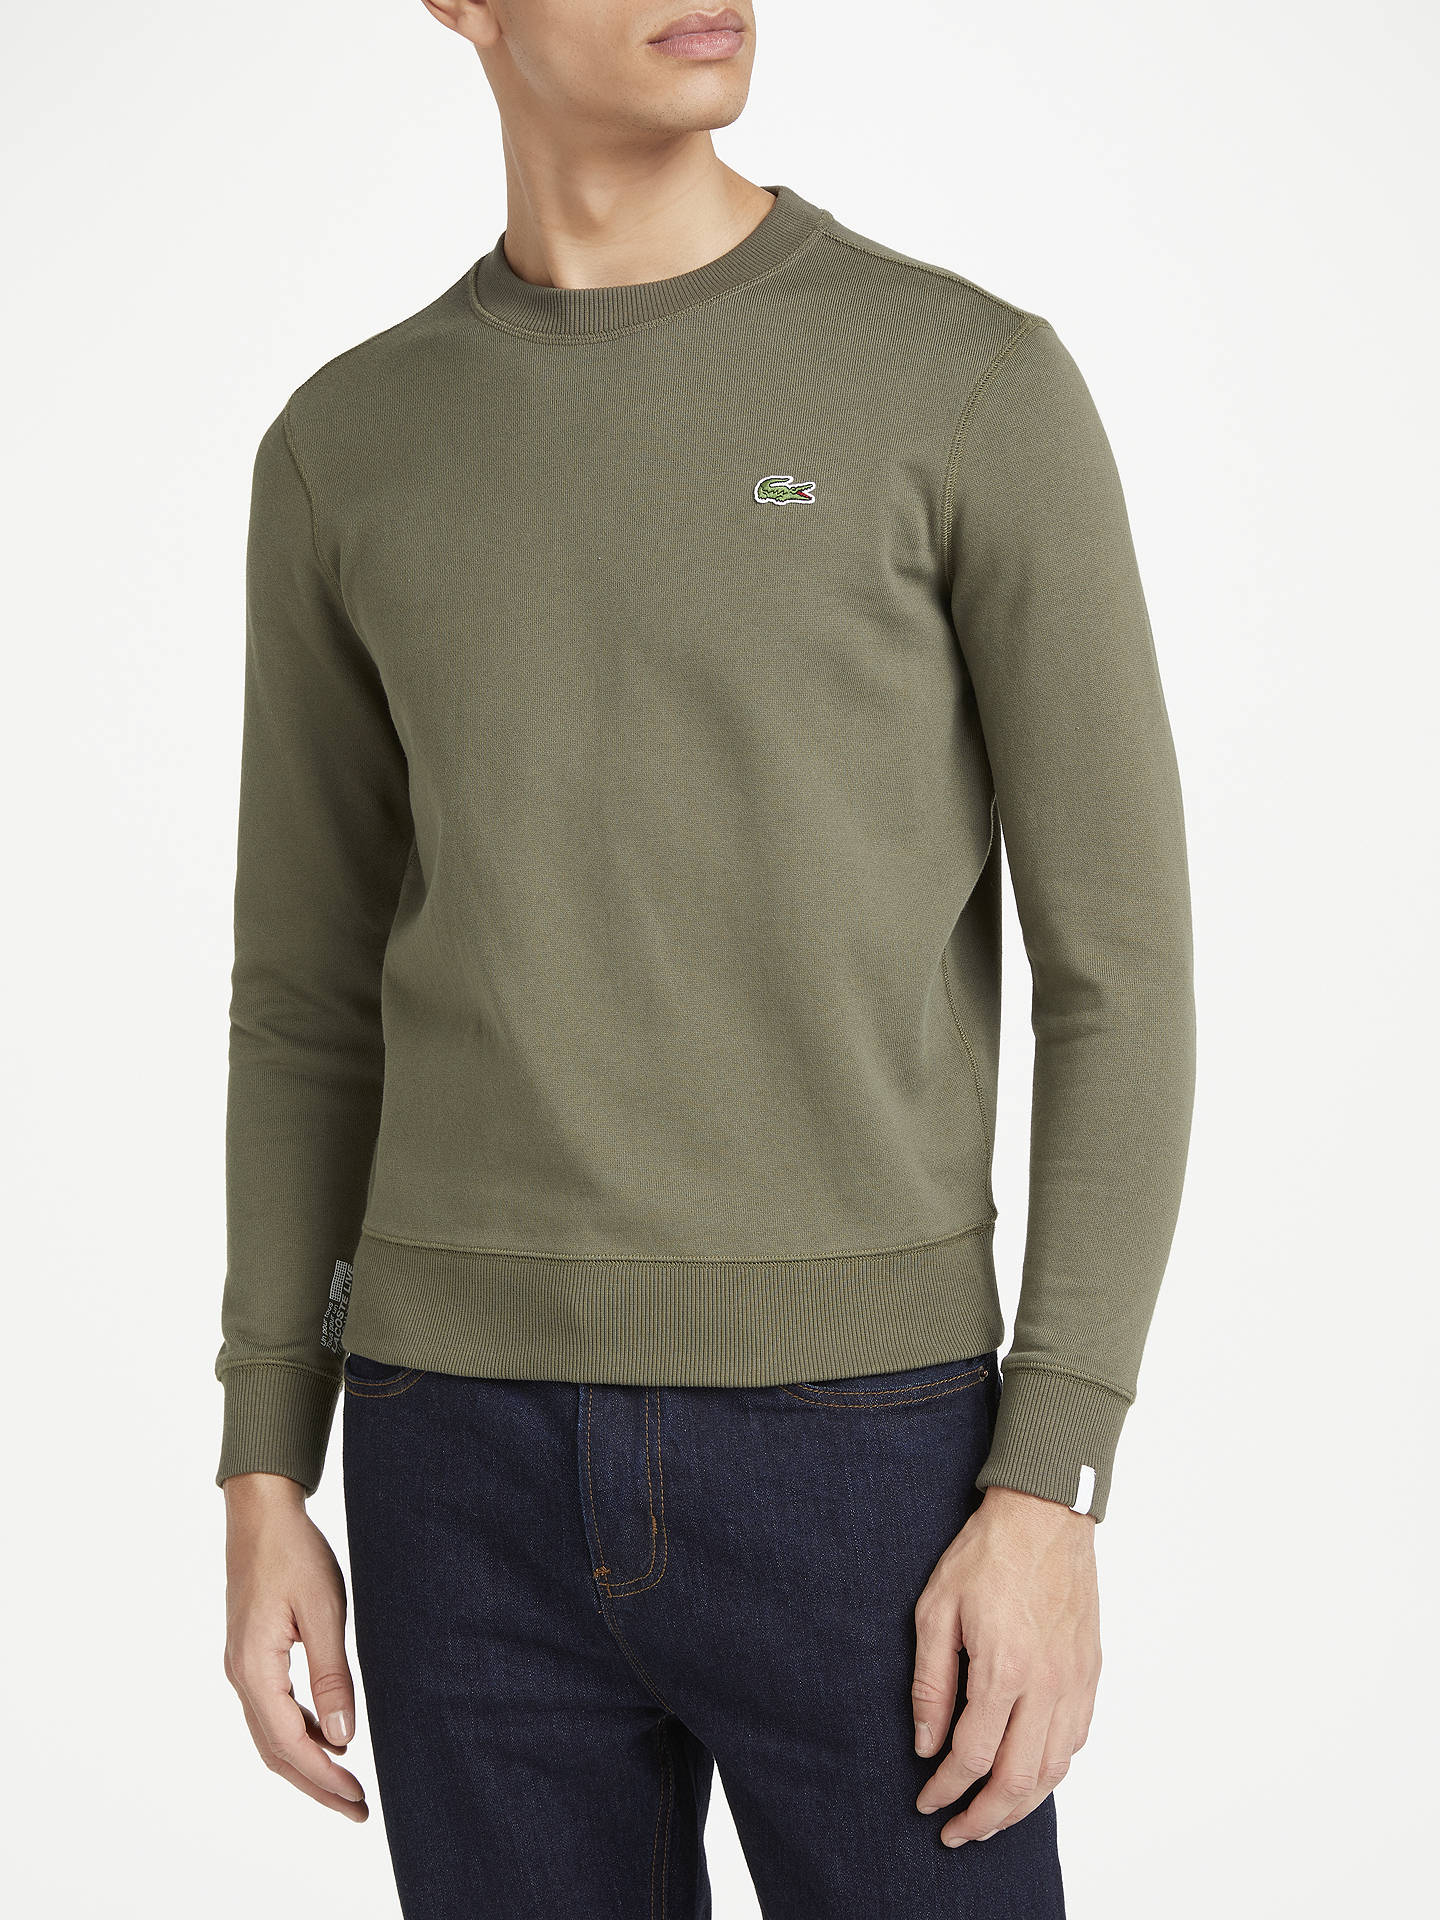 ac95520d Lacoste LIVE Crew Neck Sweatshirt, Army Green at John Lewis & Partners